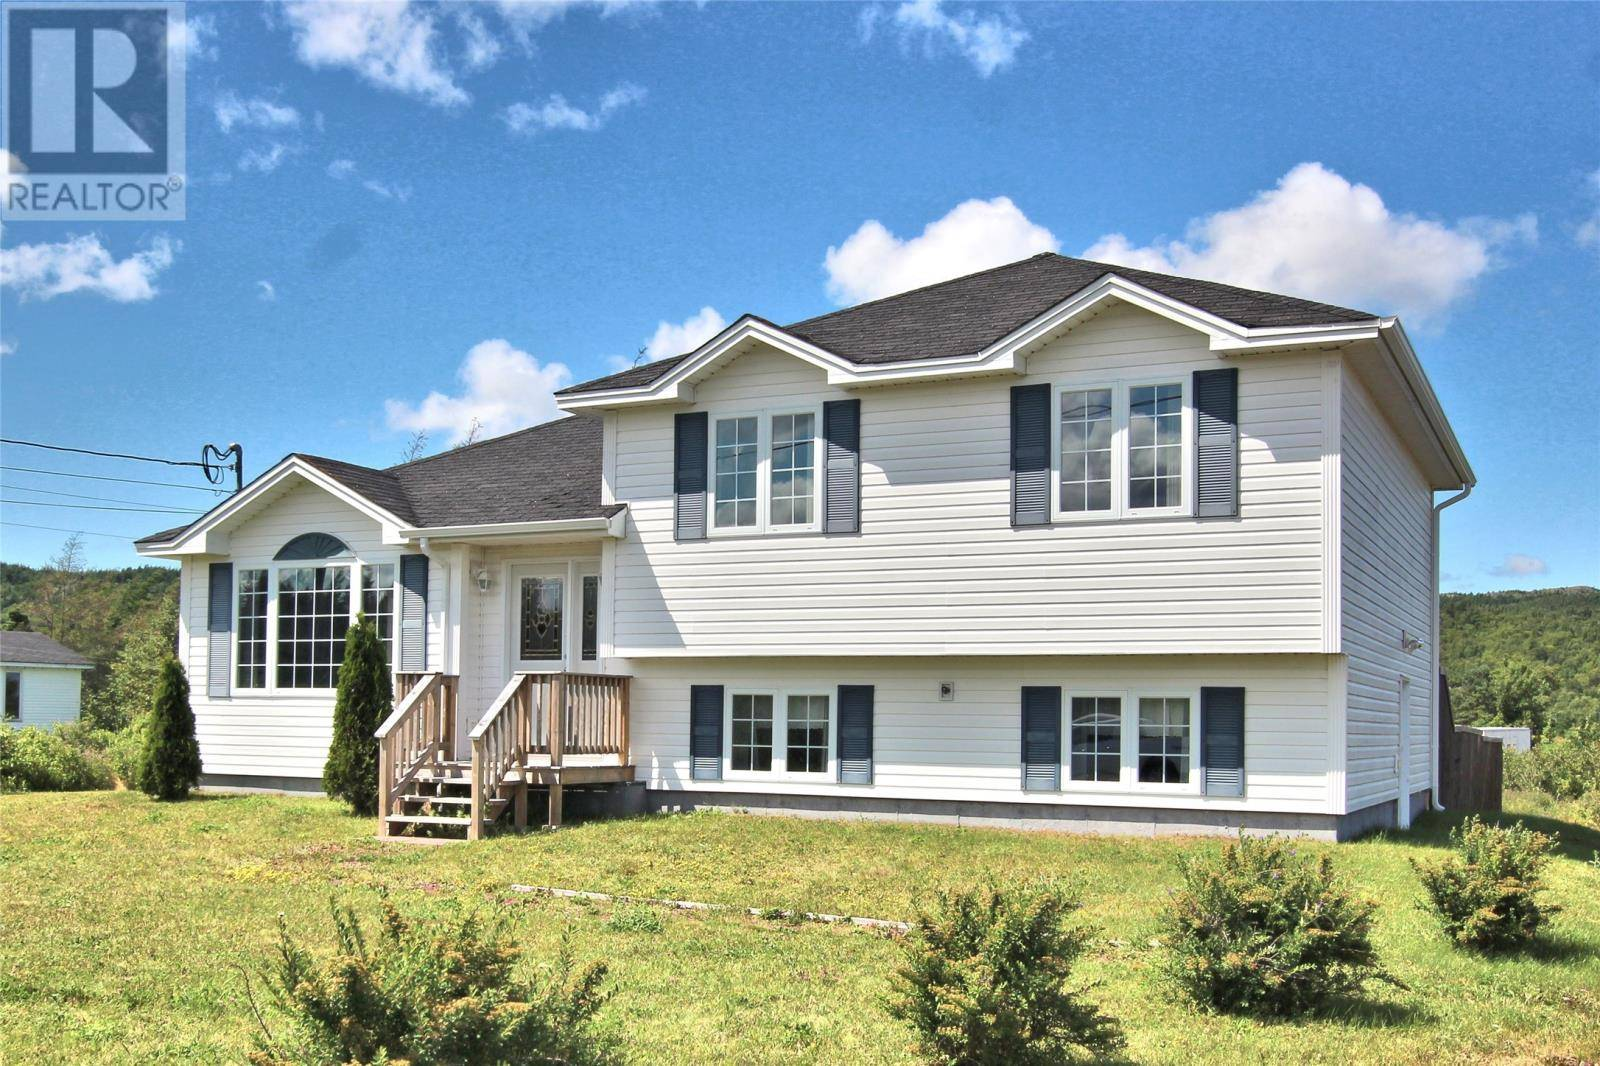 House for sale at 6 Haywards Rd Bay Roberts Newfoundland - MLS: 1200700